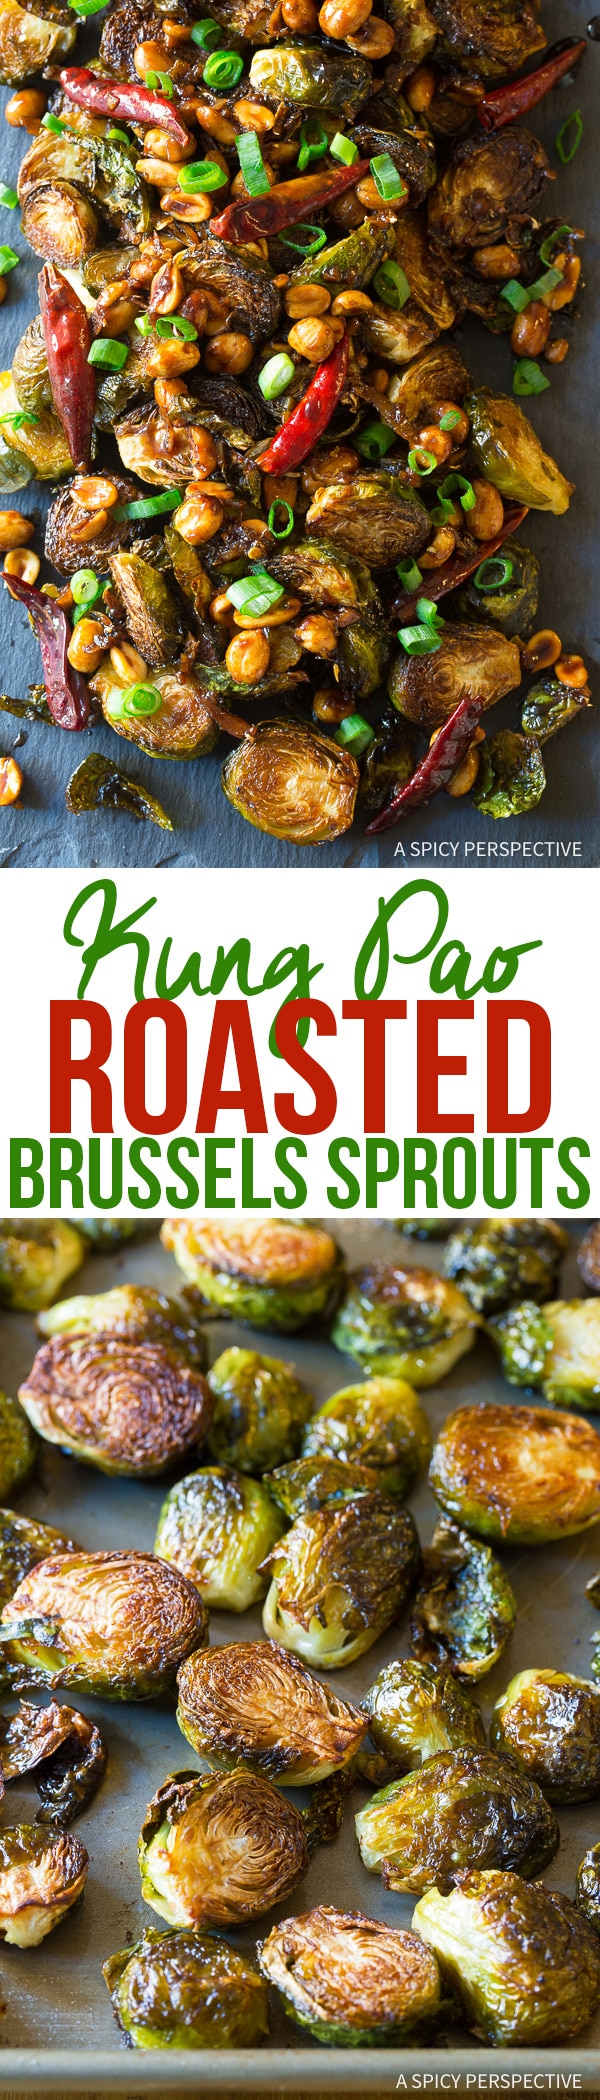 Crispy Kung Pao Roasted Brussels Sprouts Recipe